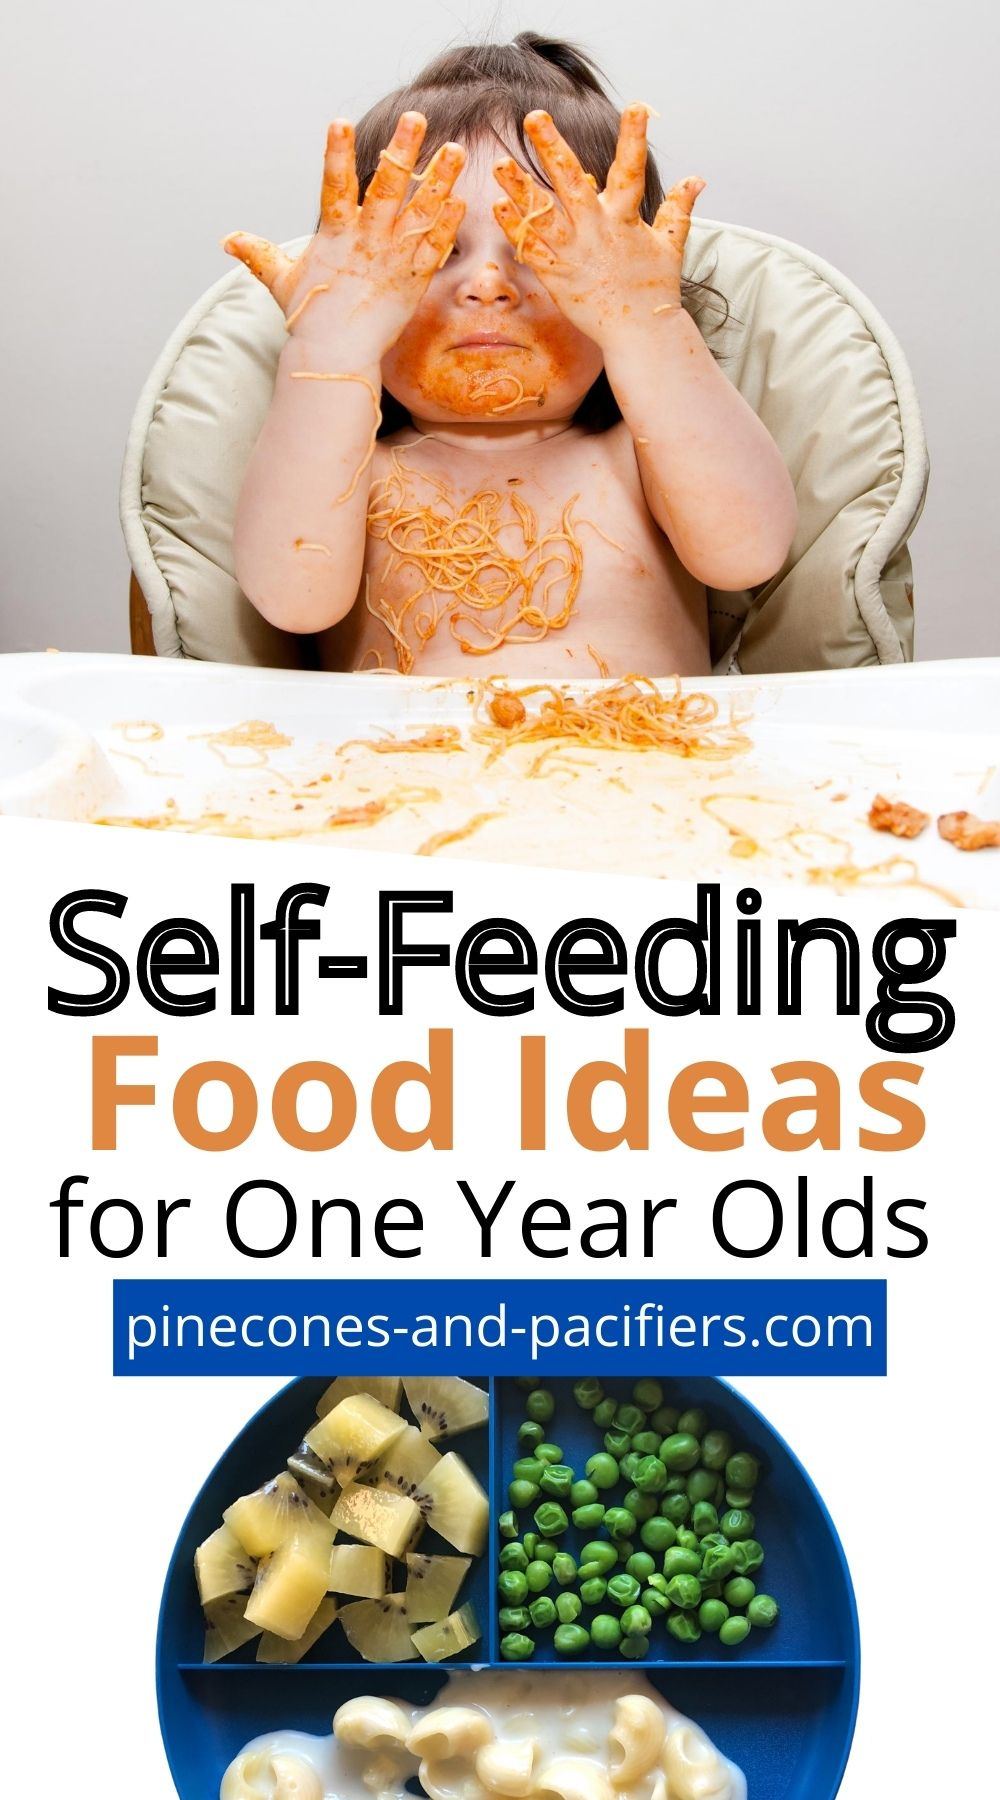 How To Get 1 Year Old To Eat More Solids